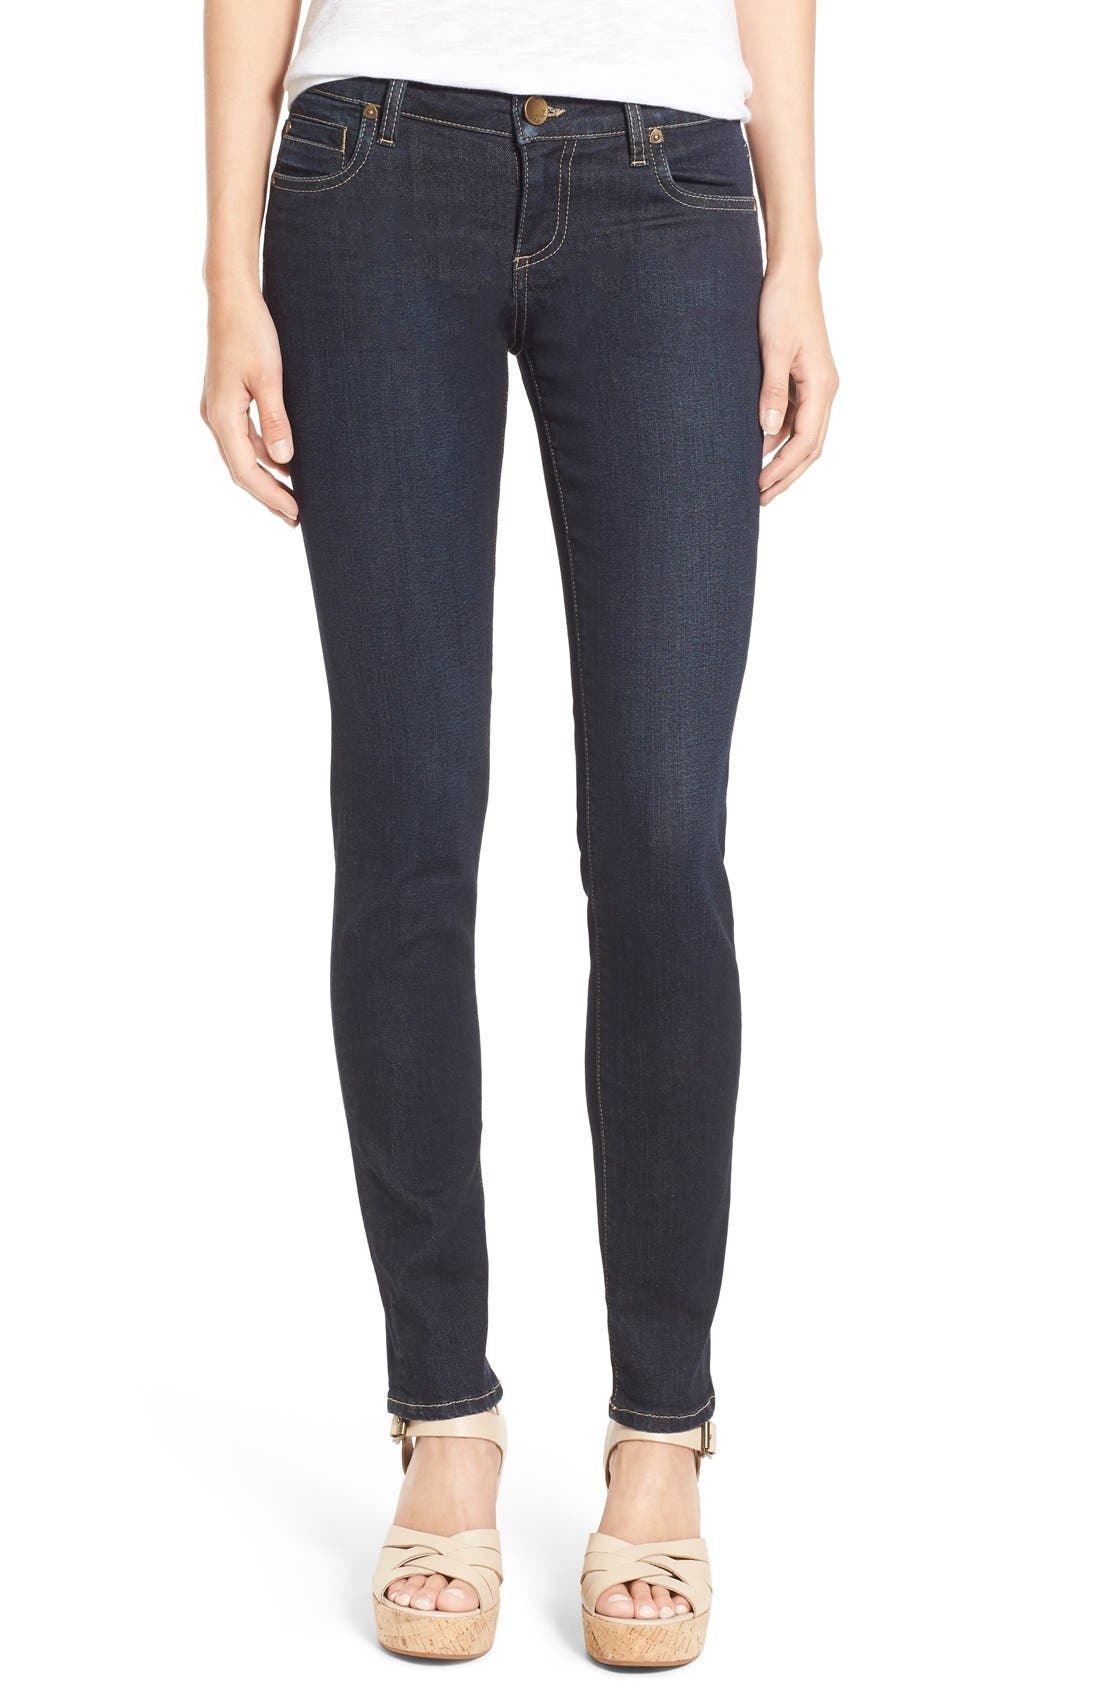 Alternate Image 1 Selected - KUT from the Kloth 'Catherine' Slim Boyfriend Jeans (Limitless) (Petite)